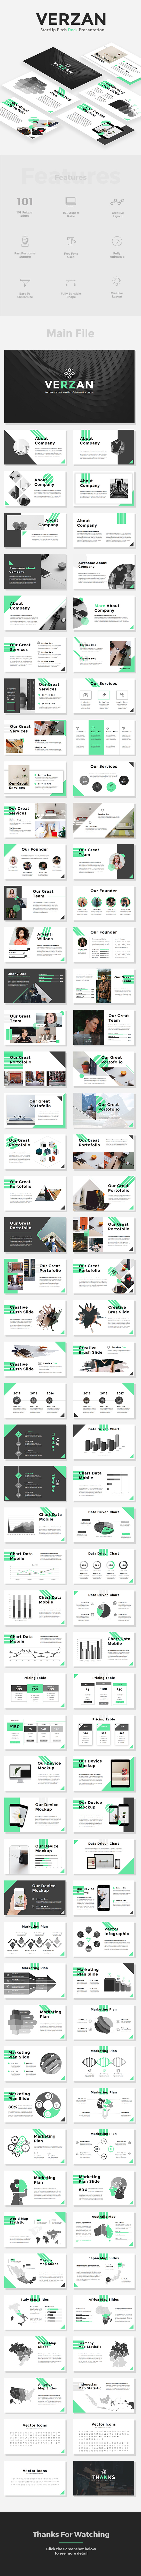 GraphicRiver Verzan StartUp Pitch Deck Google Slides Templates 20947833